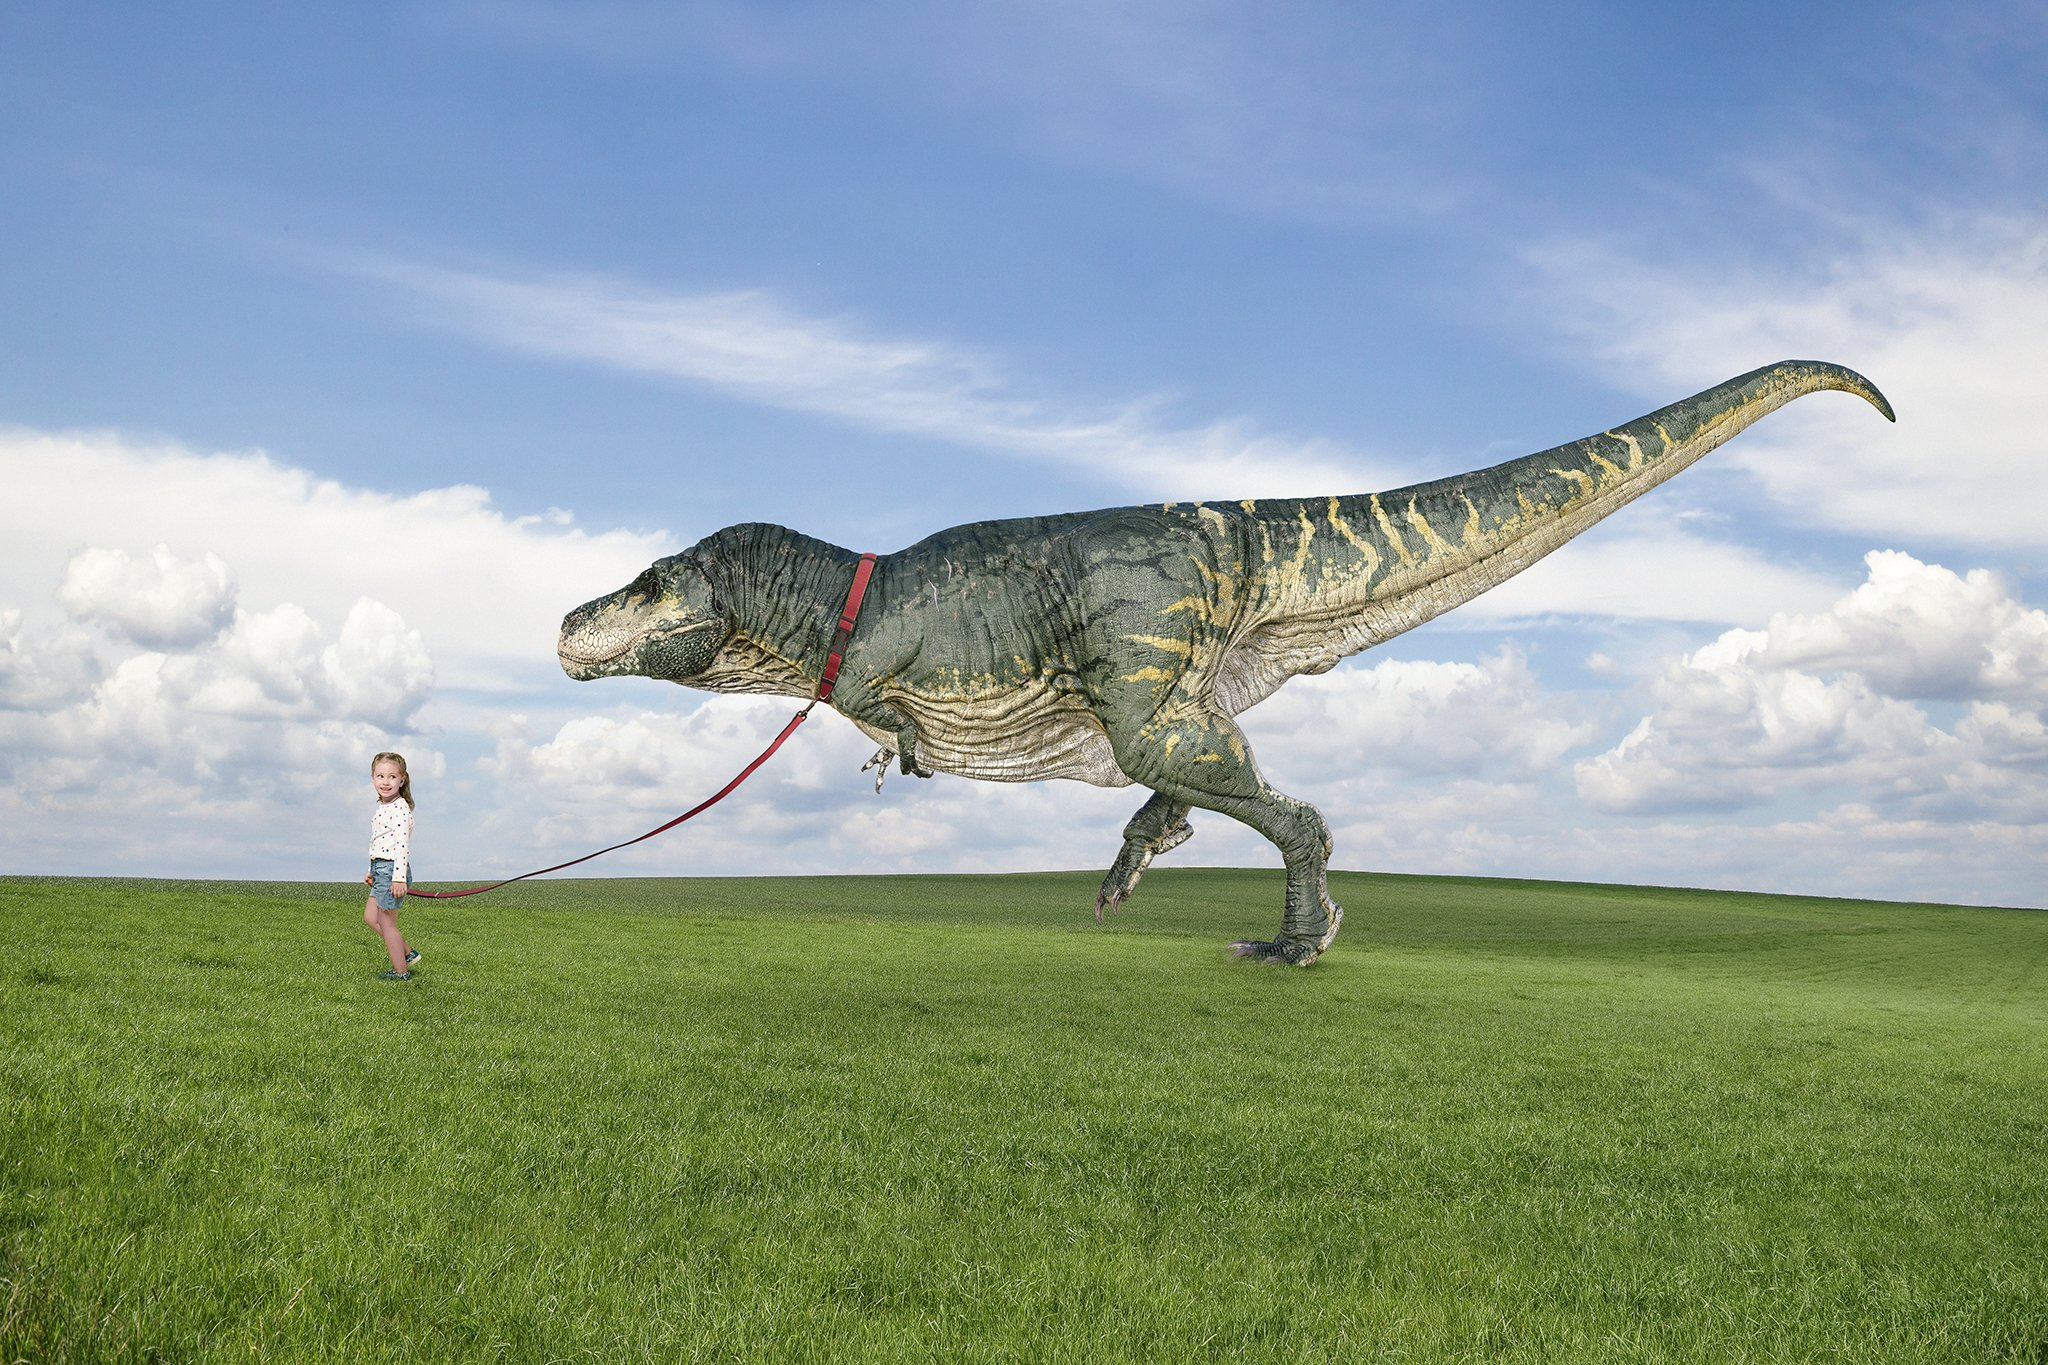 a photoshop composite image by Alana Lee of a girl walking her pet tyrannosaurus rex across a green field with blue sky